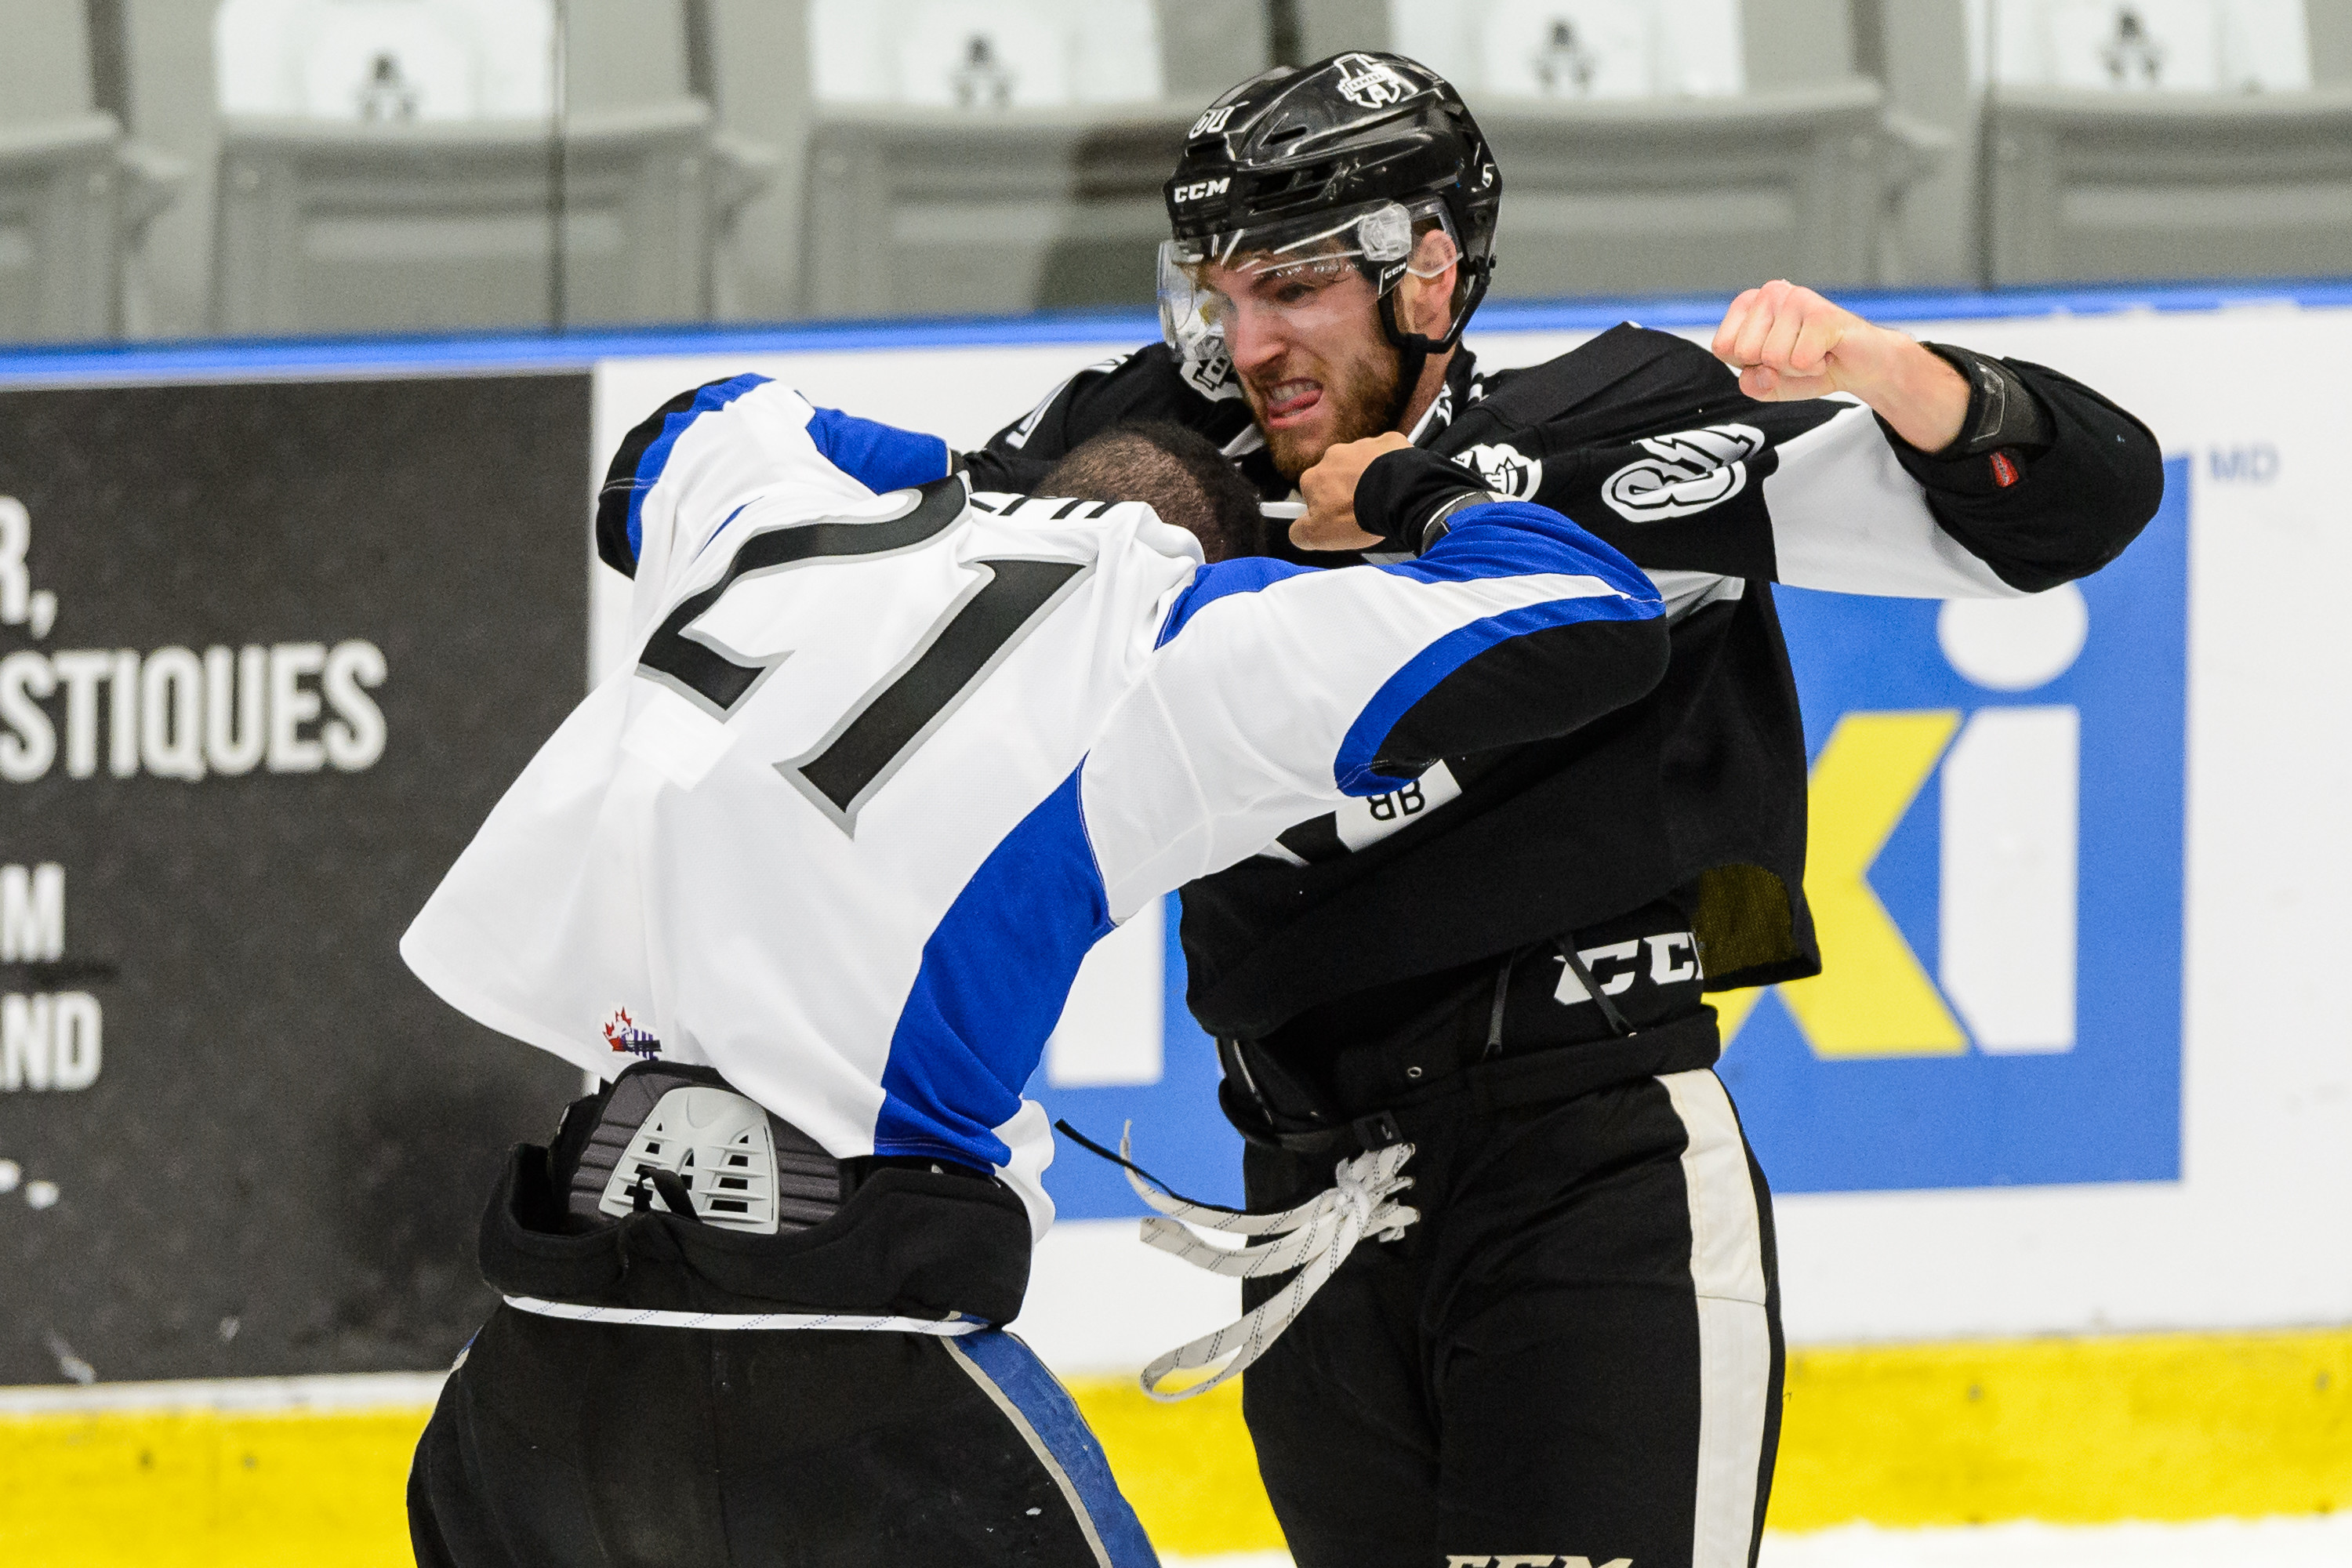 BOISBRIAND, QC - OCTOBER 12: Jeremy Roy #81 of the Blainville-Boisbriand Armada fights with Mathieu Joseph #21 of the Saint John Sea Dogs during the QMJHL game at the Centre d'Excellence Sports Rousseau on October 12, 2016 in Boisbriand, Quebec, Canada.